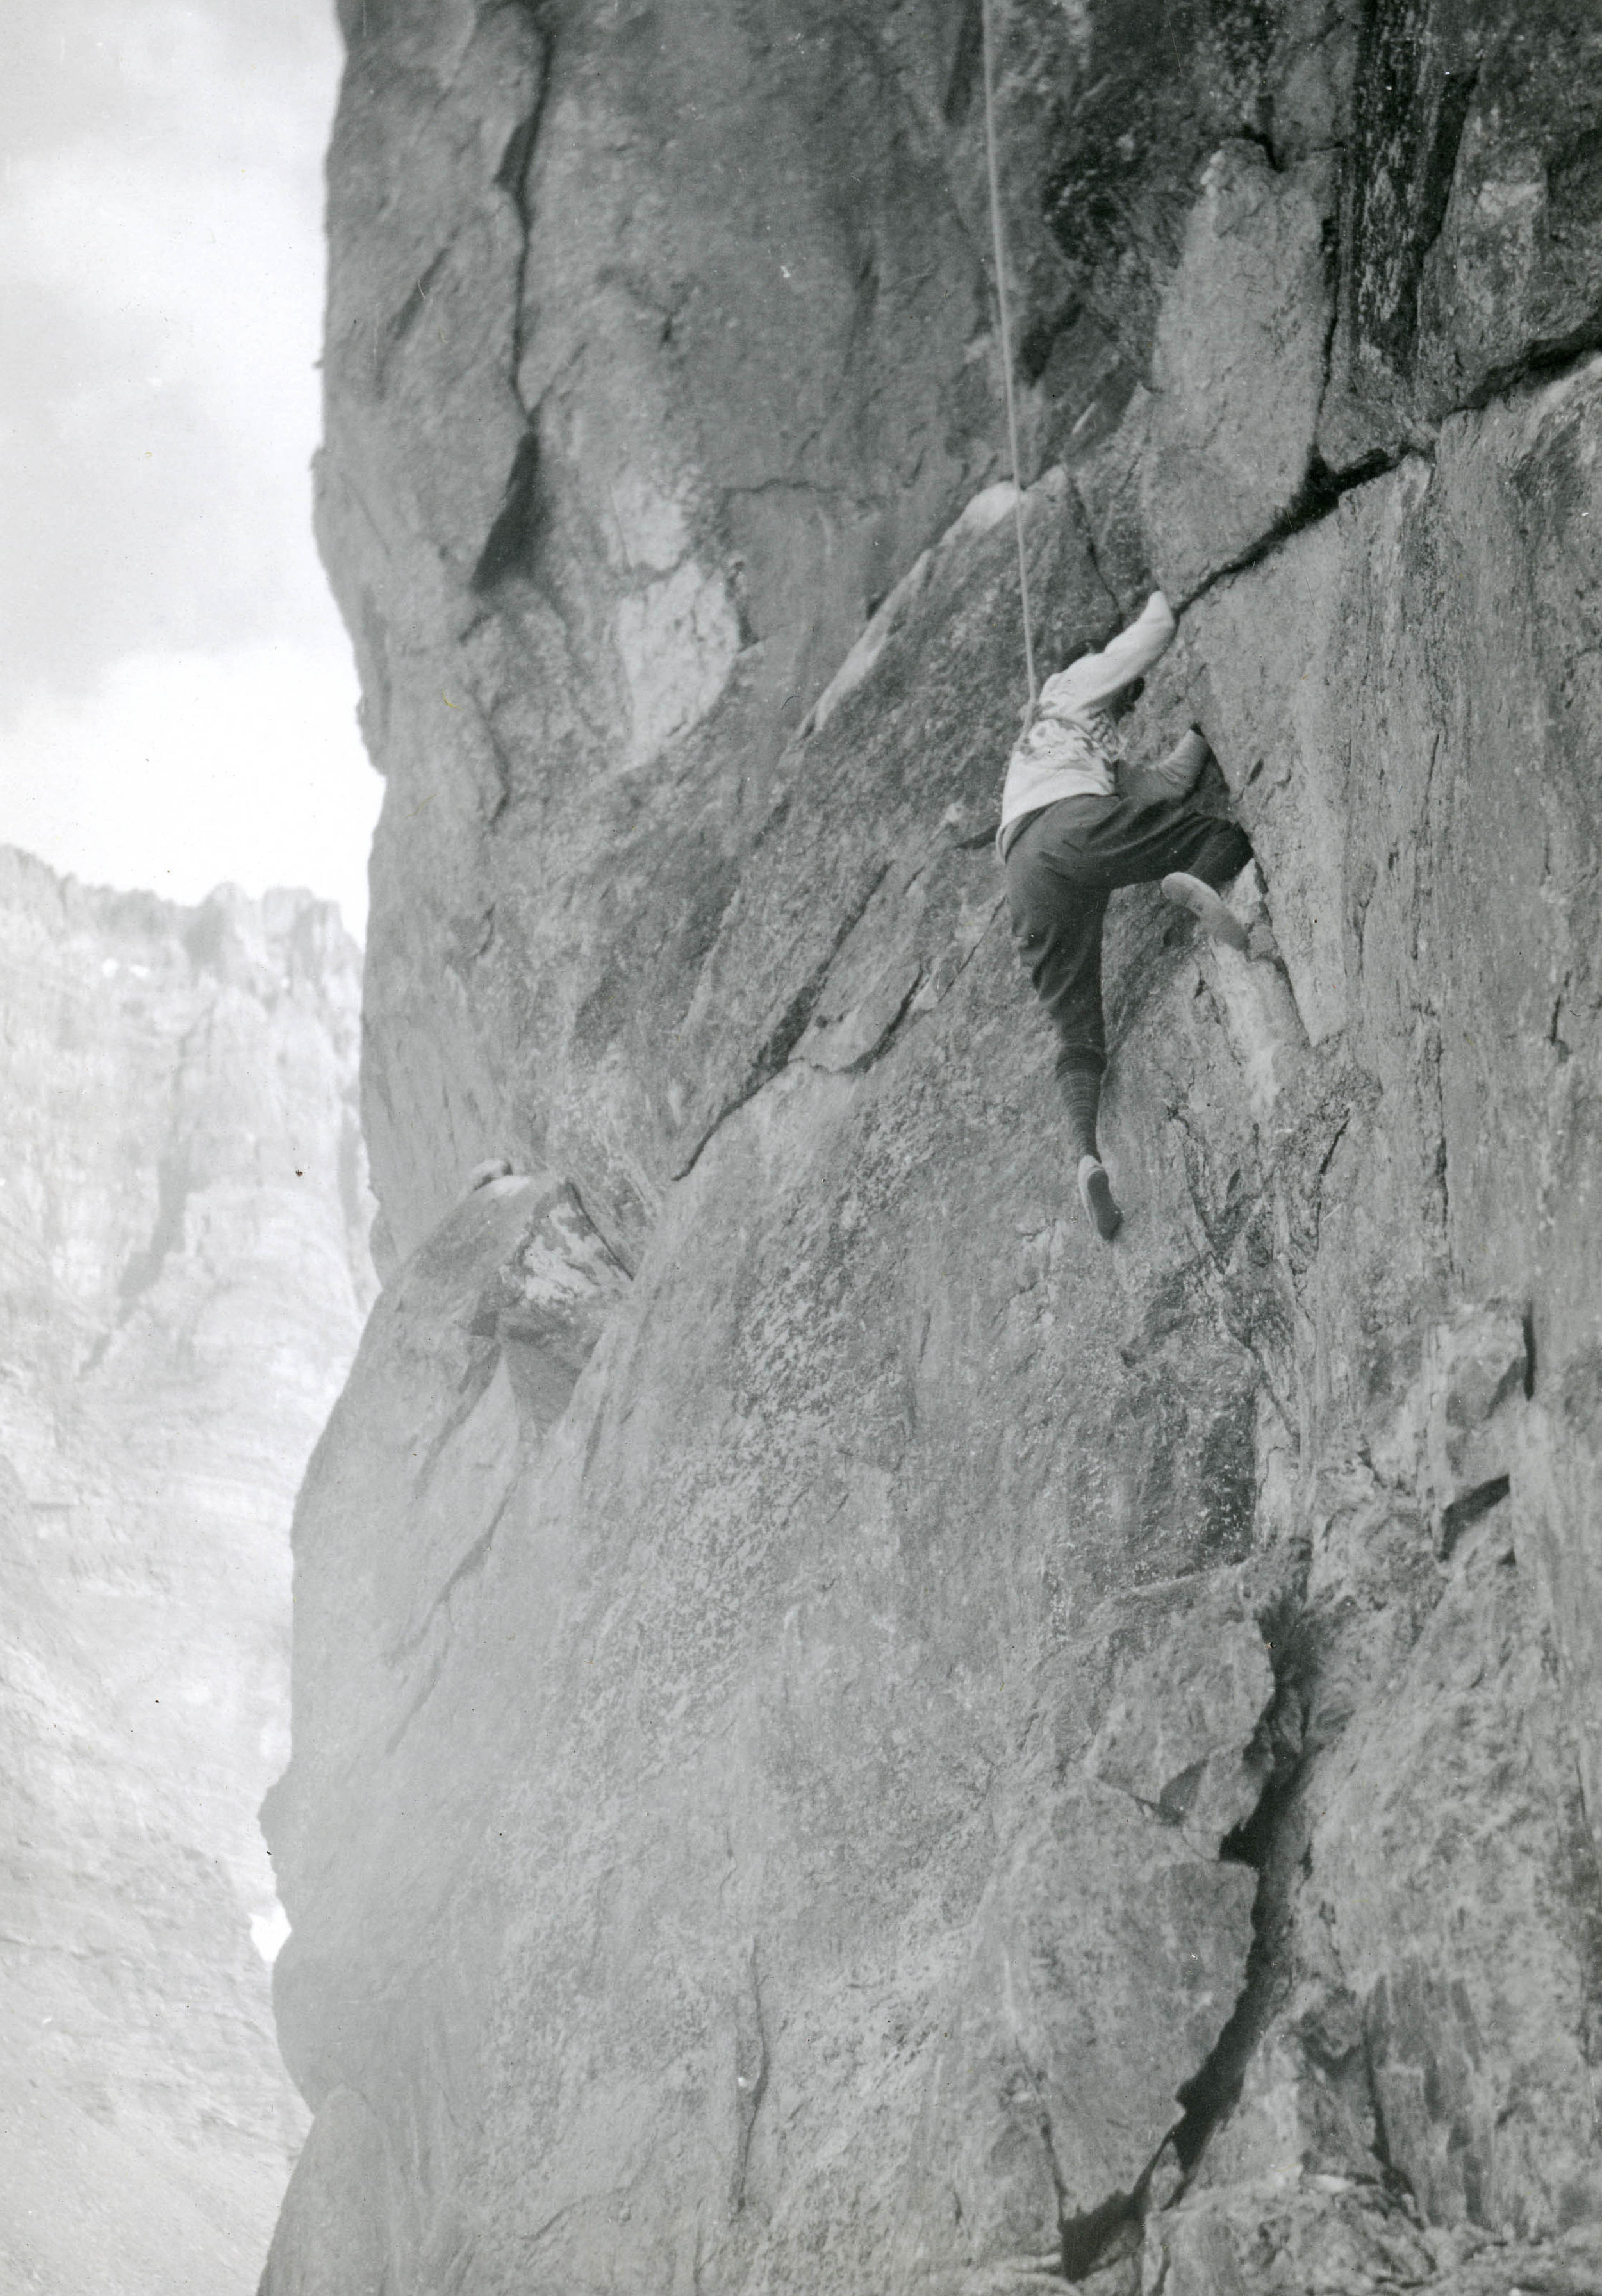 A woman makes her way up a rock face